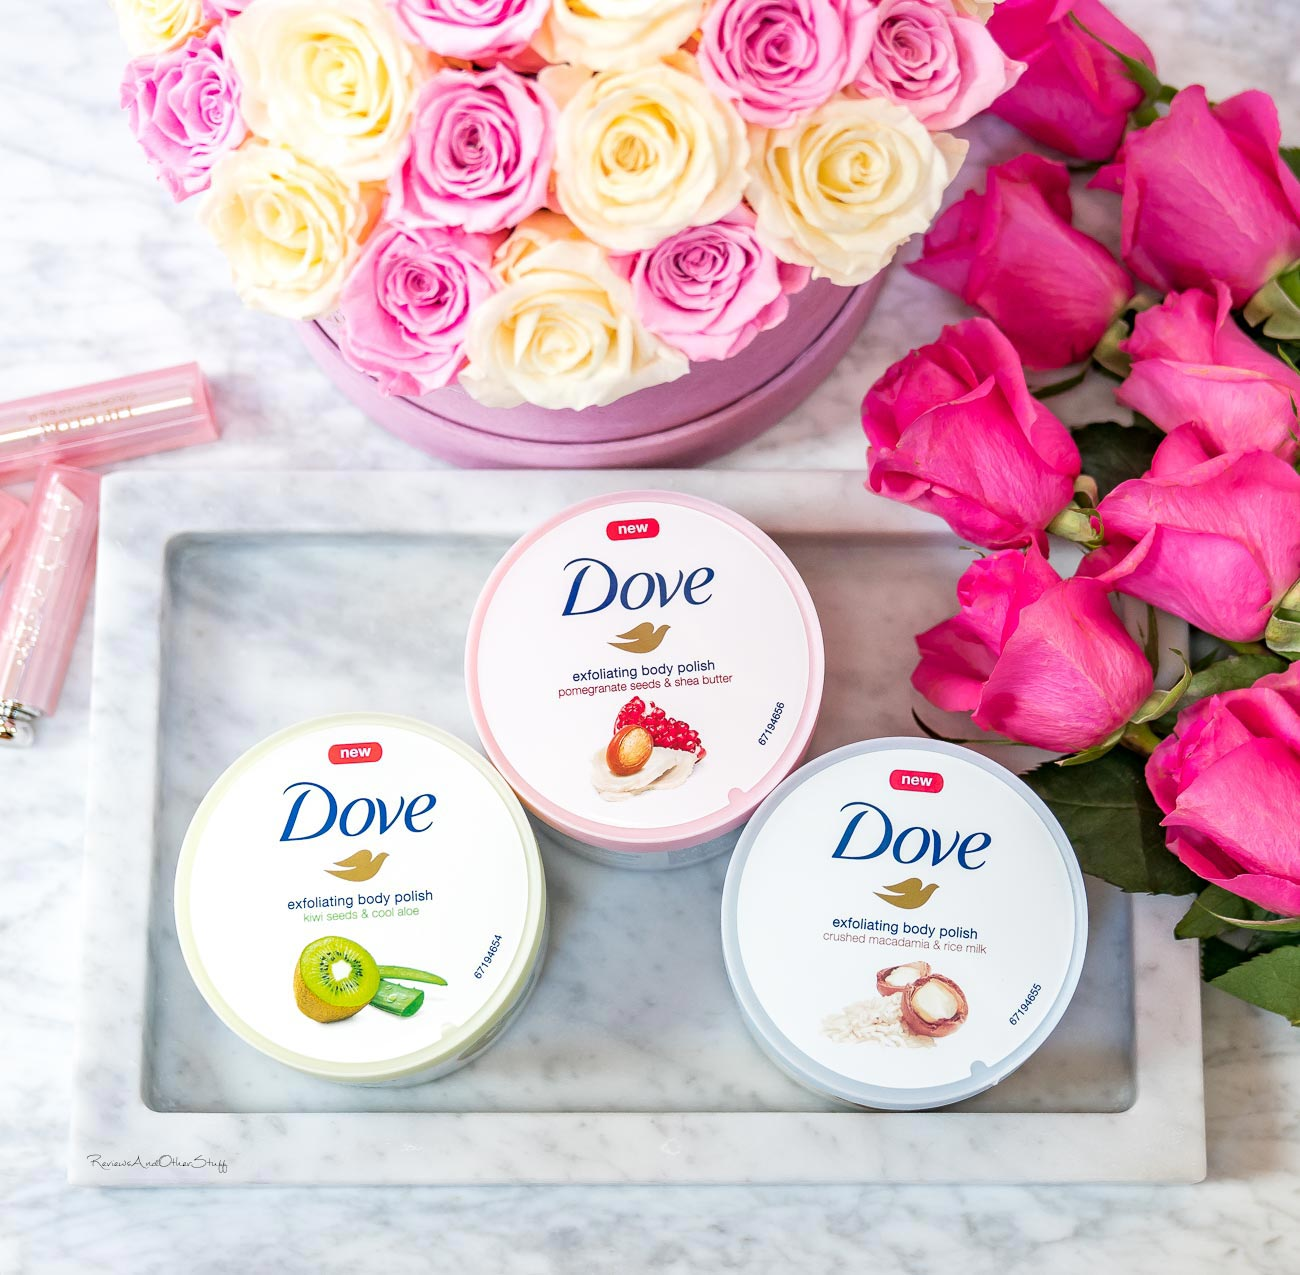 Dove Exfoliating Body Polish Review Reviews And Other Stuff